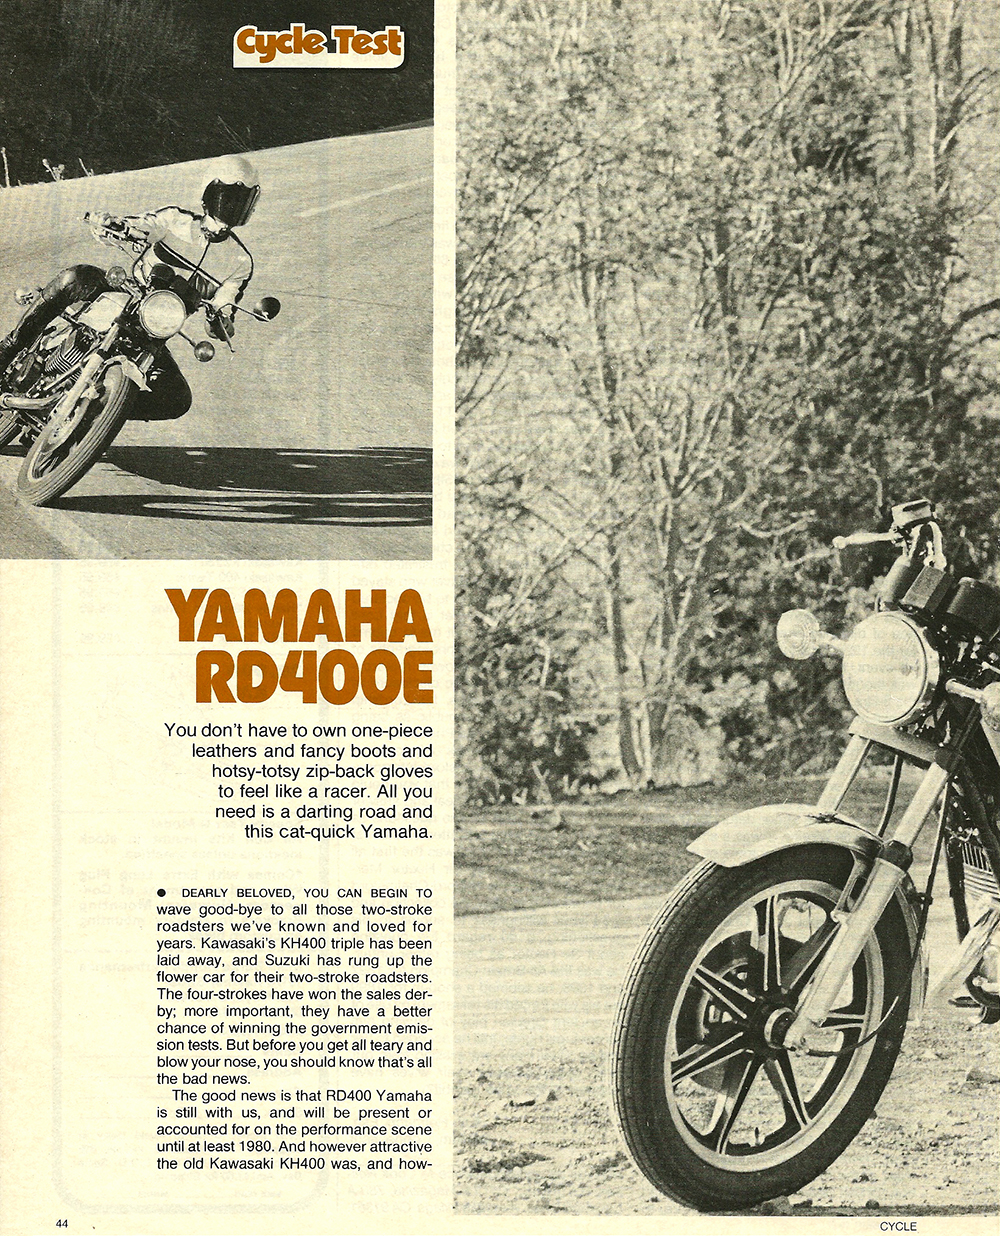 1977 Yamaha RD400E road test 1.jpg